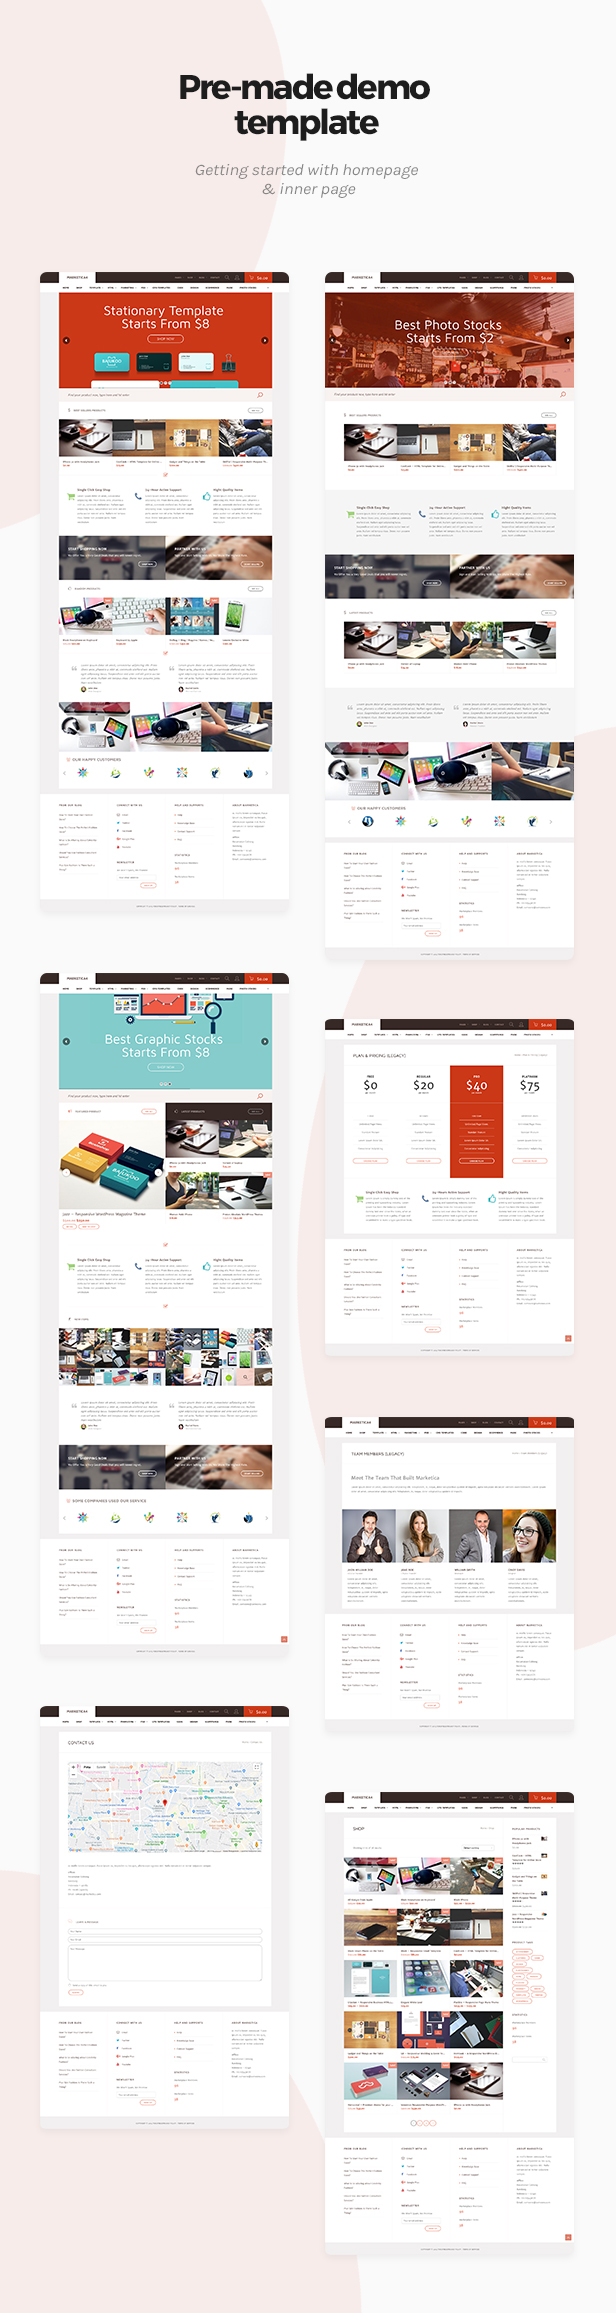 Marketica - eCommerce and Marketplace - WooCommerce WordPress Theme - 1